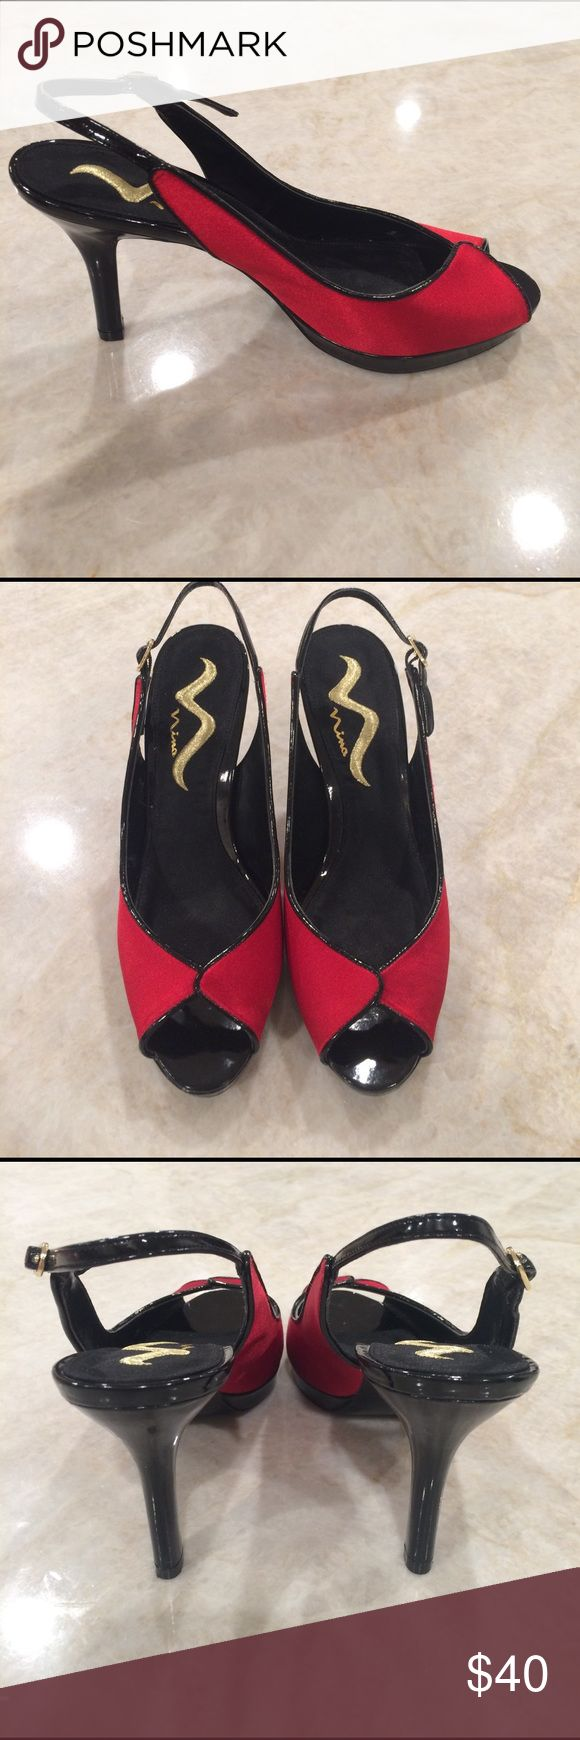 """Nina red satin & black patent leather shoes Beautiful red satin and black patent leather. Nina peep toe, sling back with adjustable buckle 4"""" heels. Worn once. Great condition. Comes in original box. Nina Shoes Heels"""